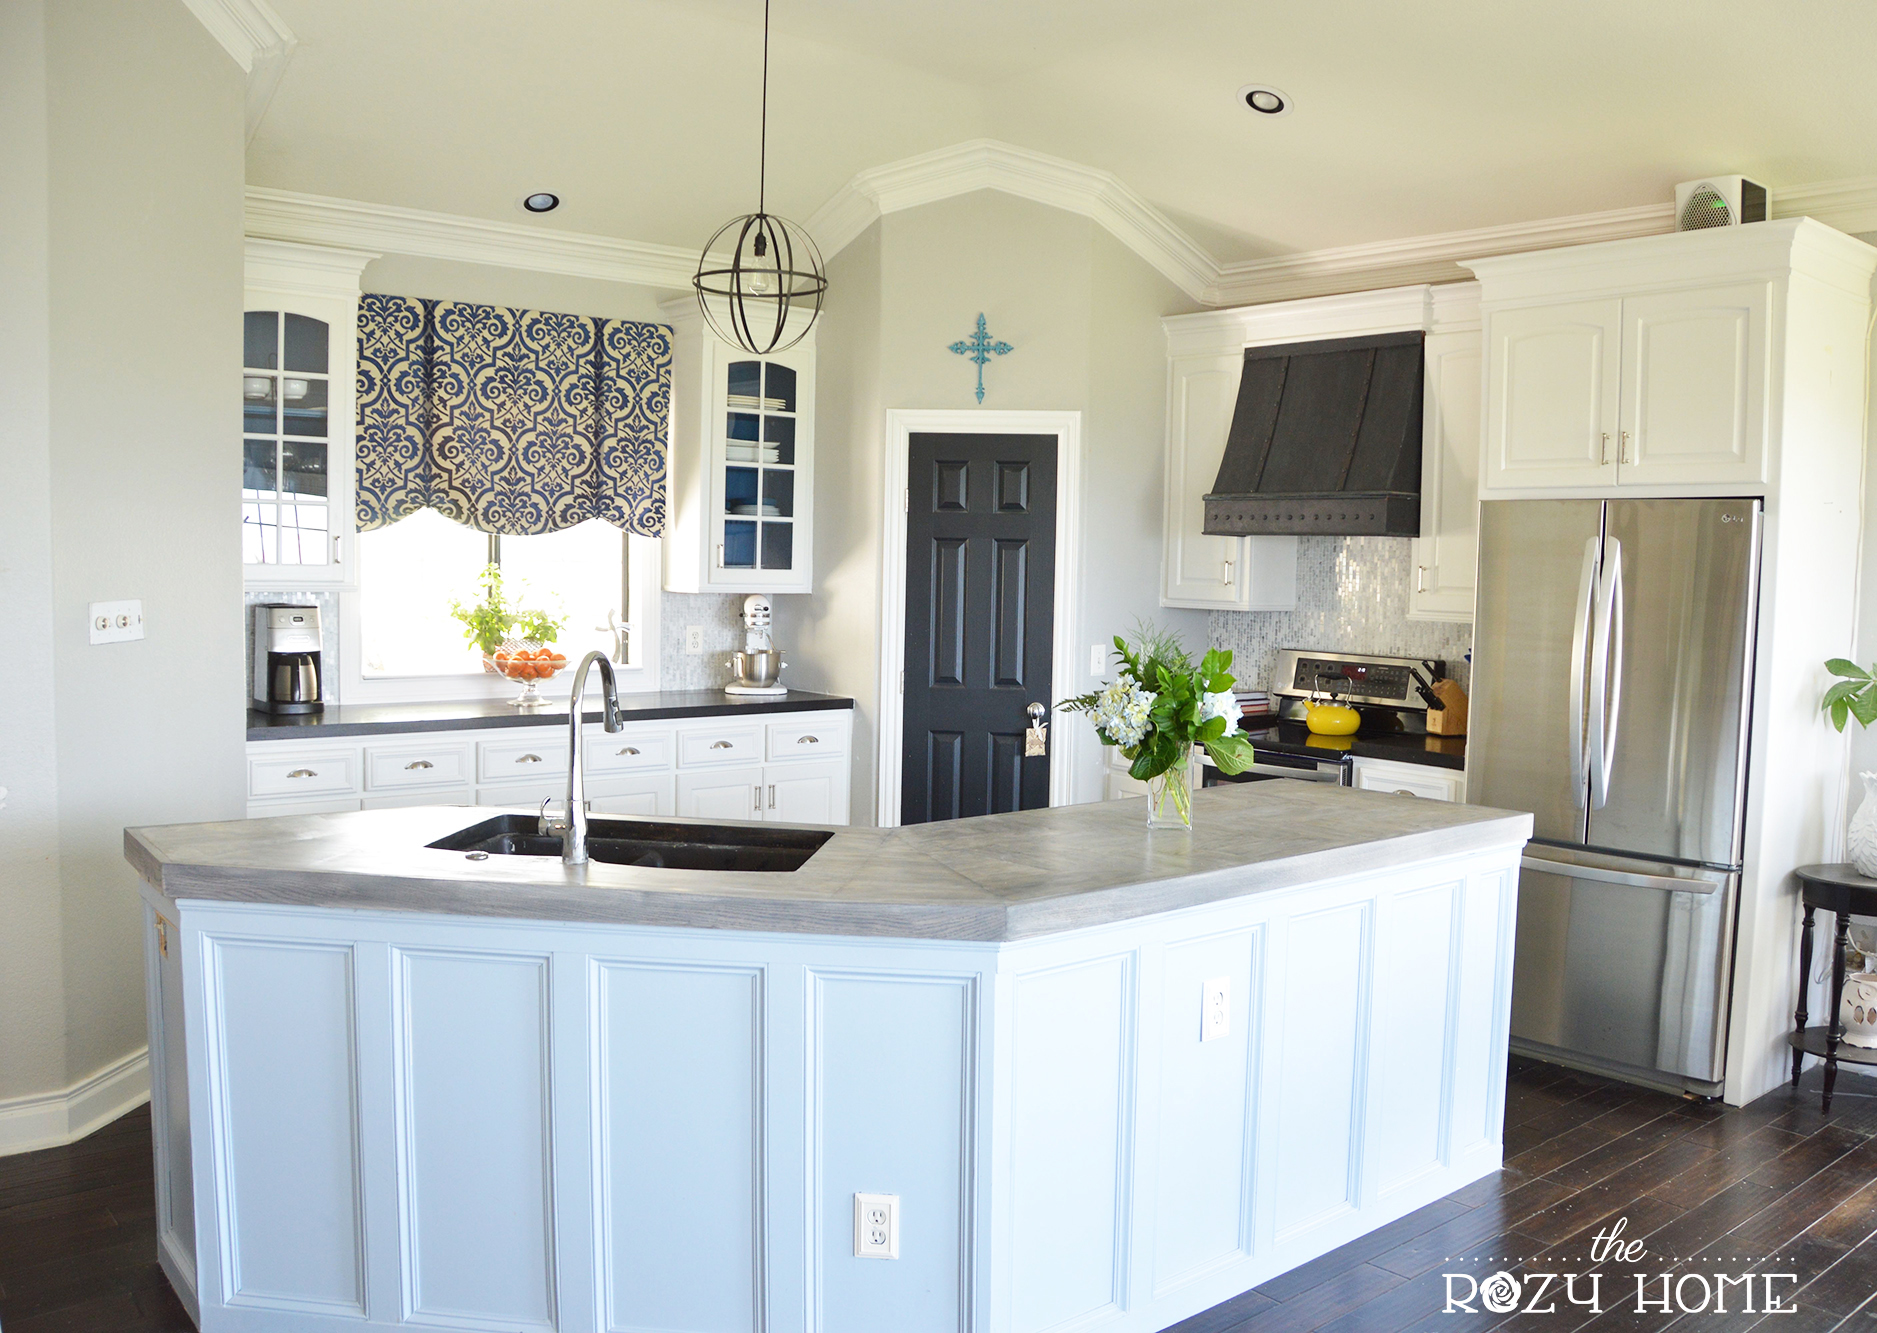 Painting Vs Refinishing Kitchen Cabinets | Home design ideas